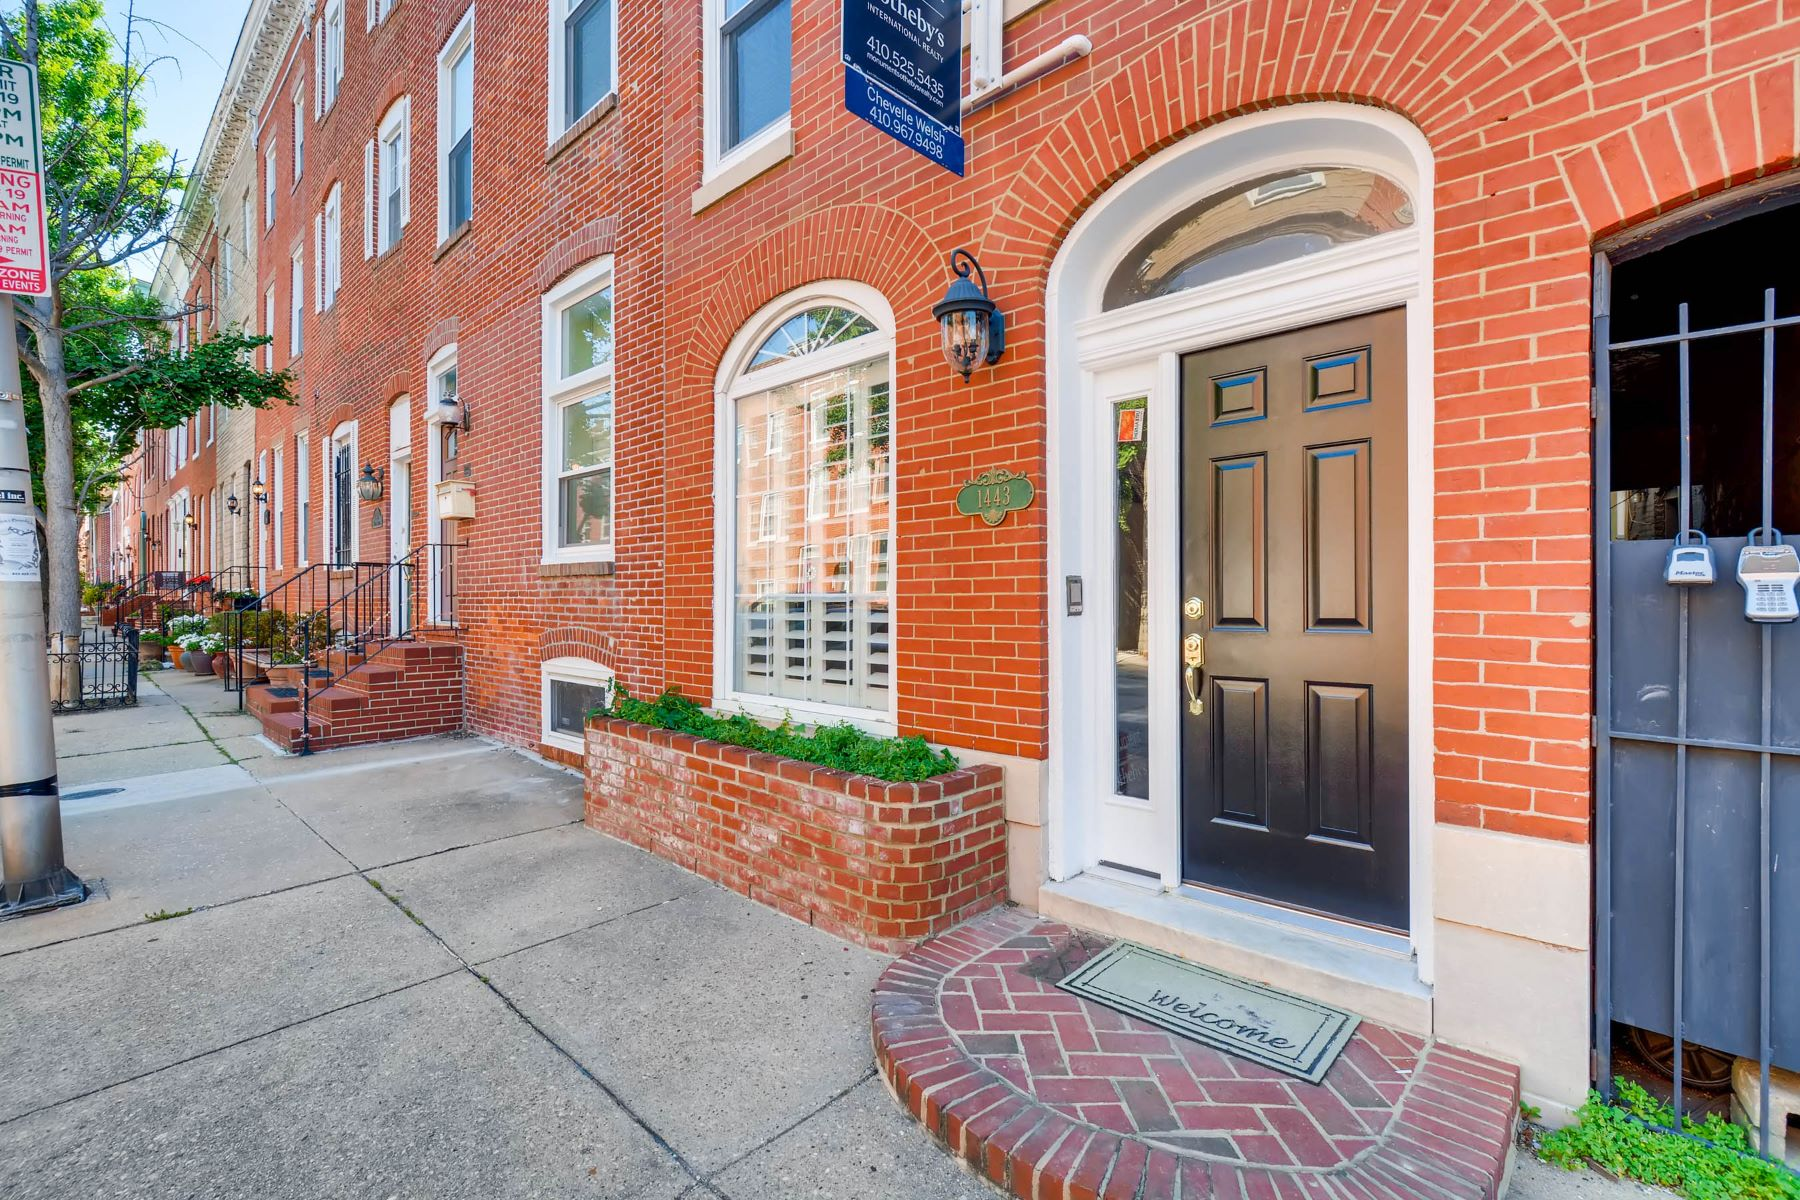 Townhouse for Sale at 1443 William Street 1443 William Street Baltimore, Maryland 21230 United States